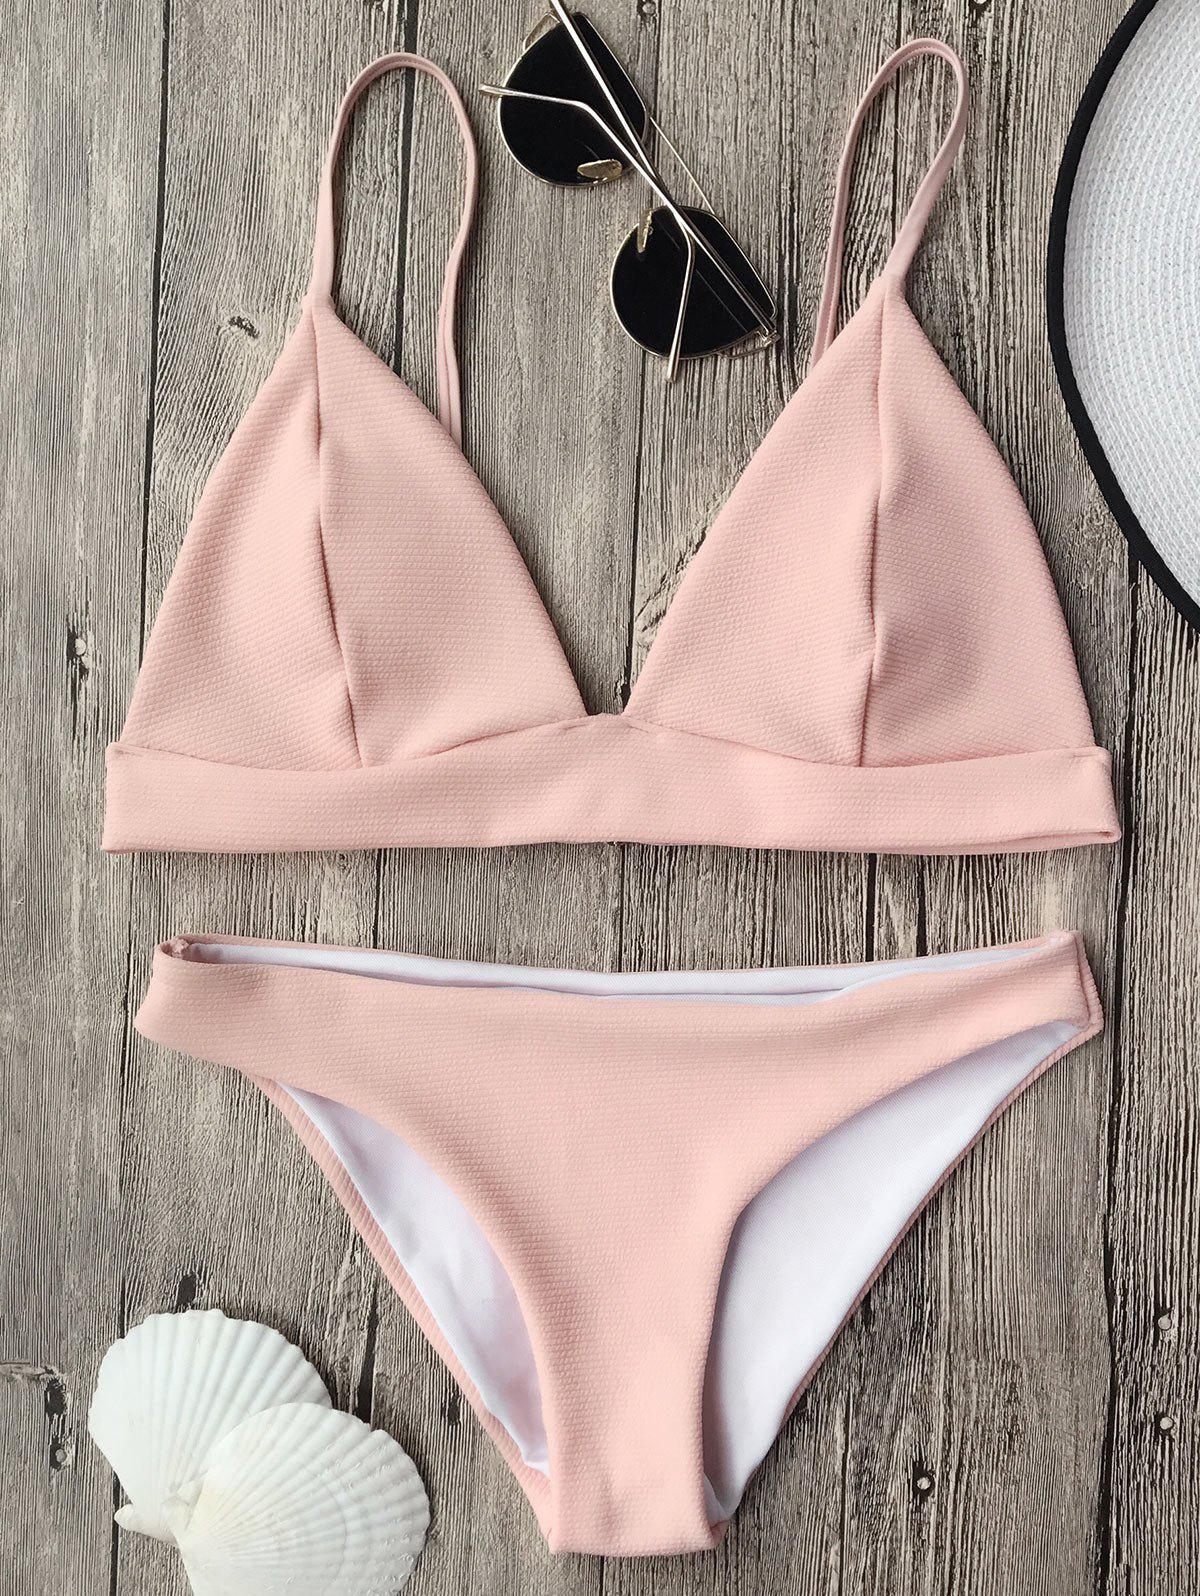 Cami Plunge Bikini Top and BottomsWOMEN<br><br>Size: L; Color: PINK; Swimwear Type: Bikini; Gender: For Women; Material: Polyester,Spandex; Bra Style: Padded; Support Type: Wire Free; Neckline: Spaghetti Straps; Pattern Type: Solid; Waist: Low Waisted; Elasticity: Elastic; Weight: 0.2000kg; Package Contents: 1 x Top  1 x Bottoms;